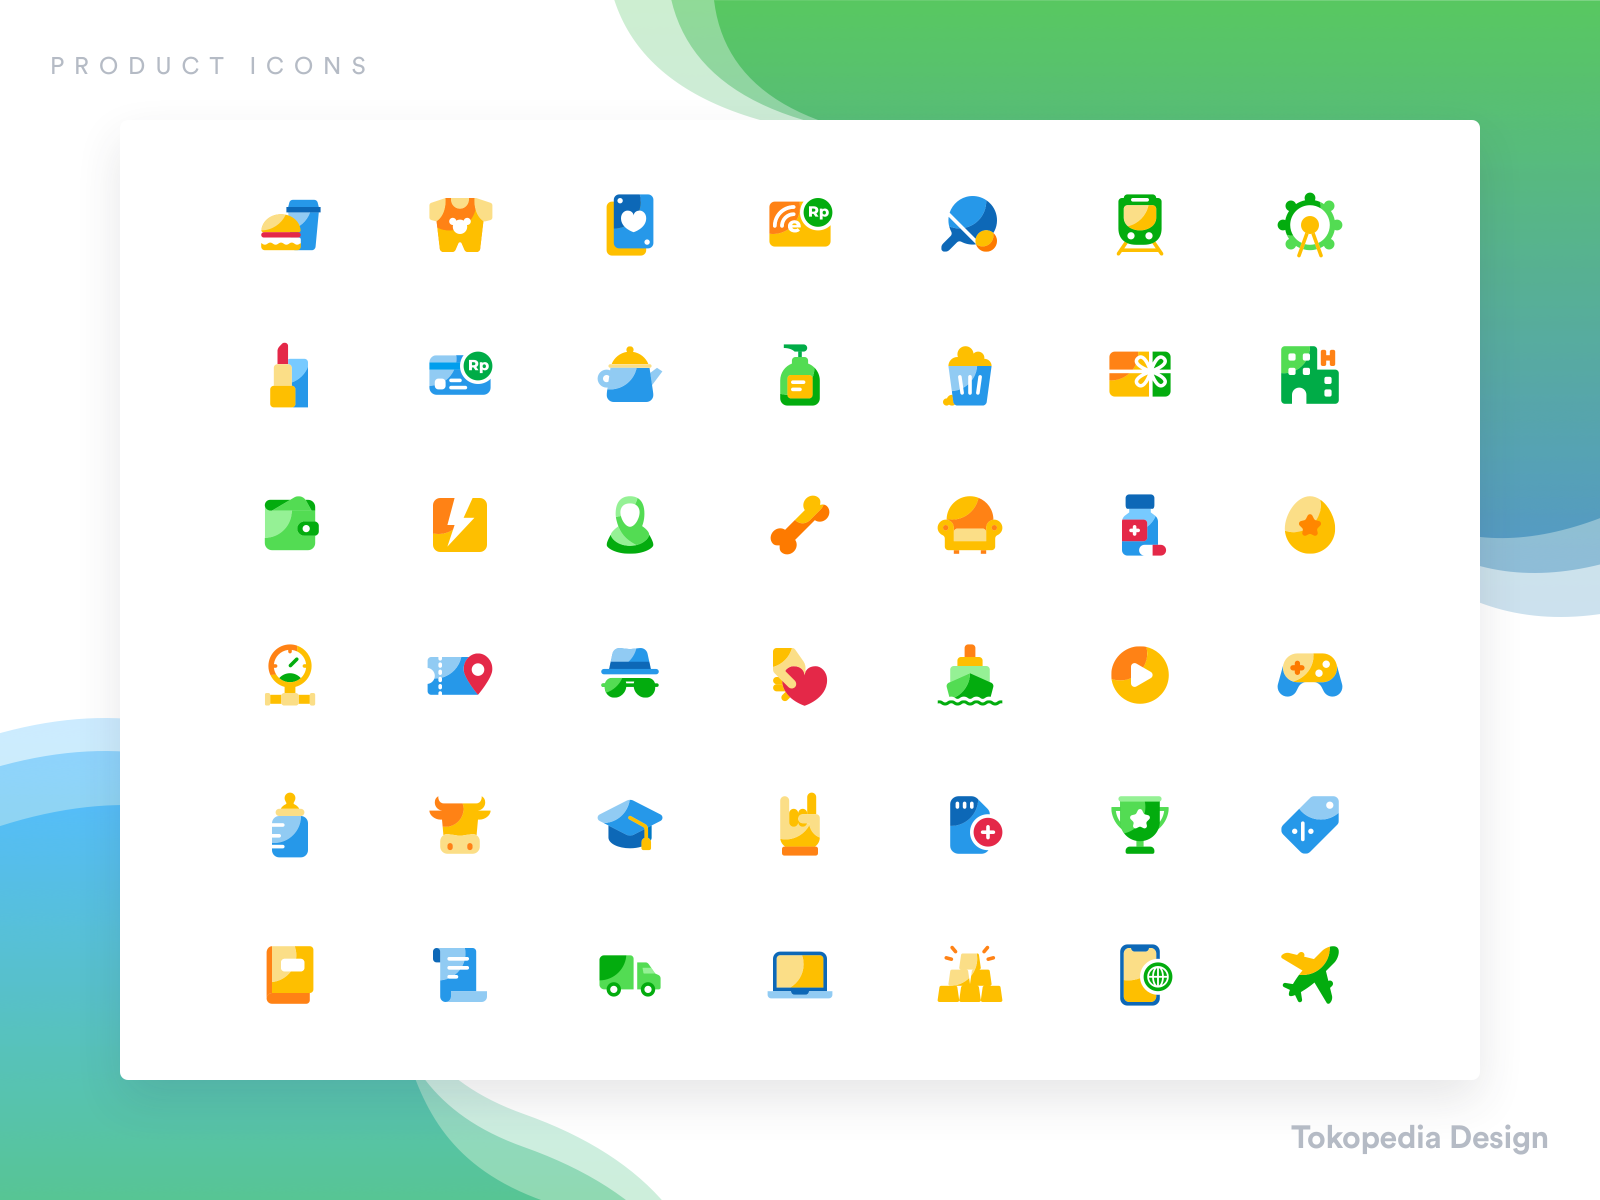 tokopedia product icons by ignatius gregory on dribbble tokopedia product icons by ignatius